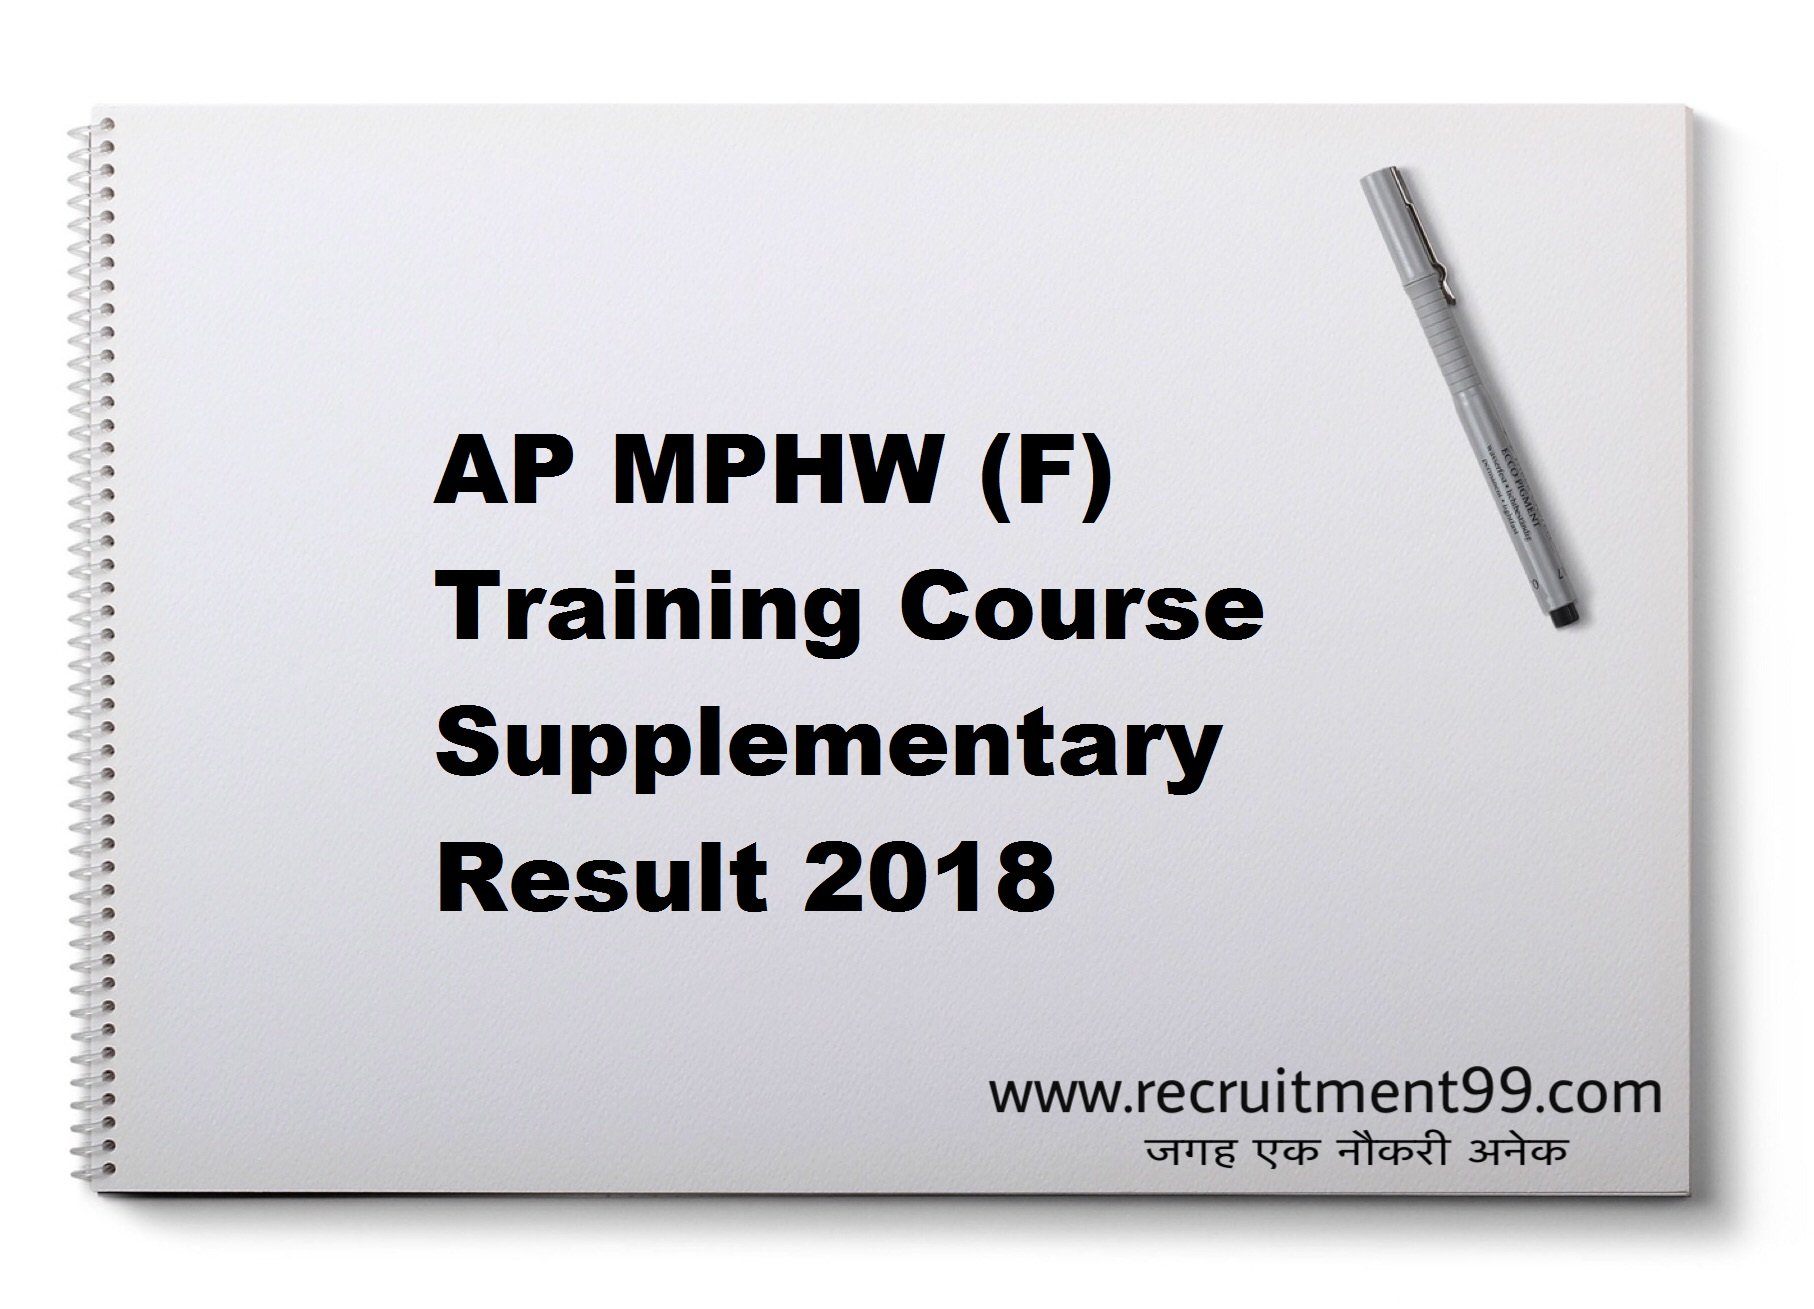 AP MPHW (F) Training Course Supplementary Hall Ticket Time Table Result 2018